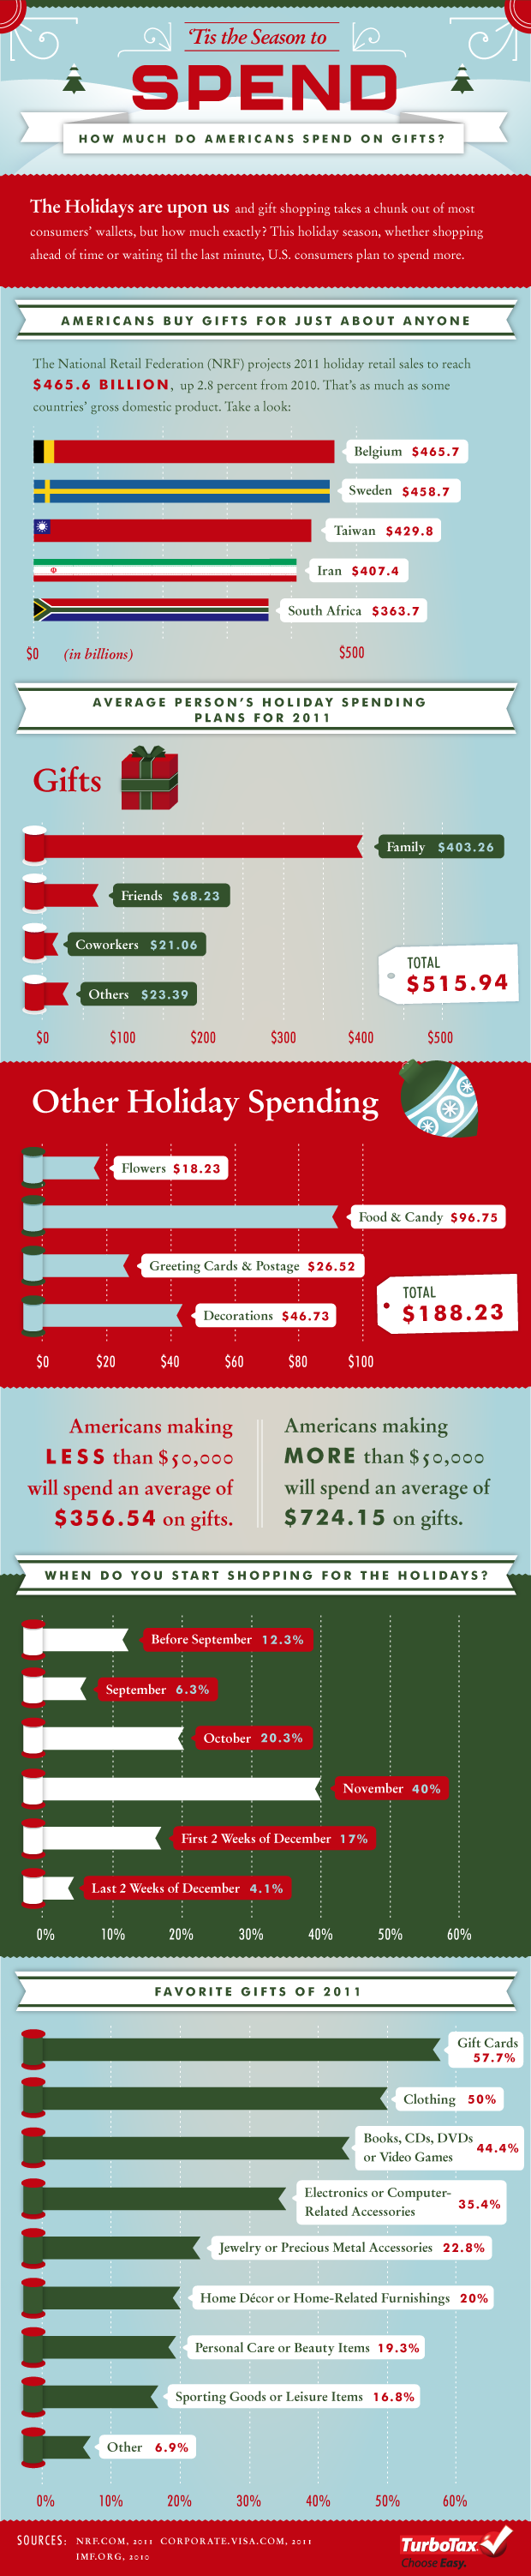 TurboTax Holiday Spending